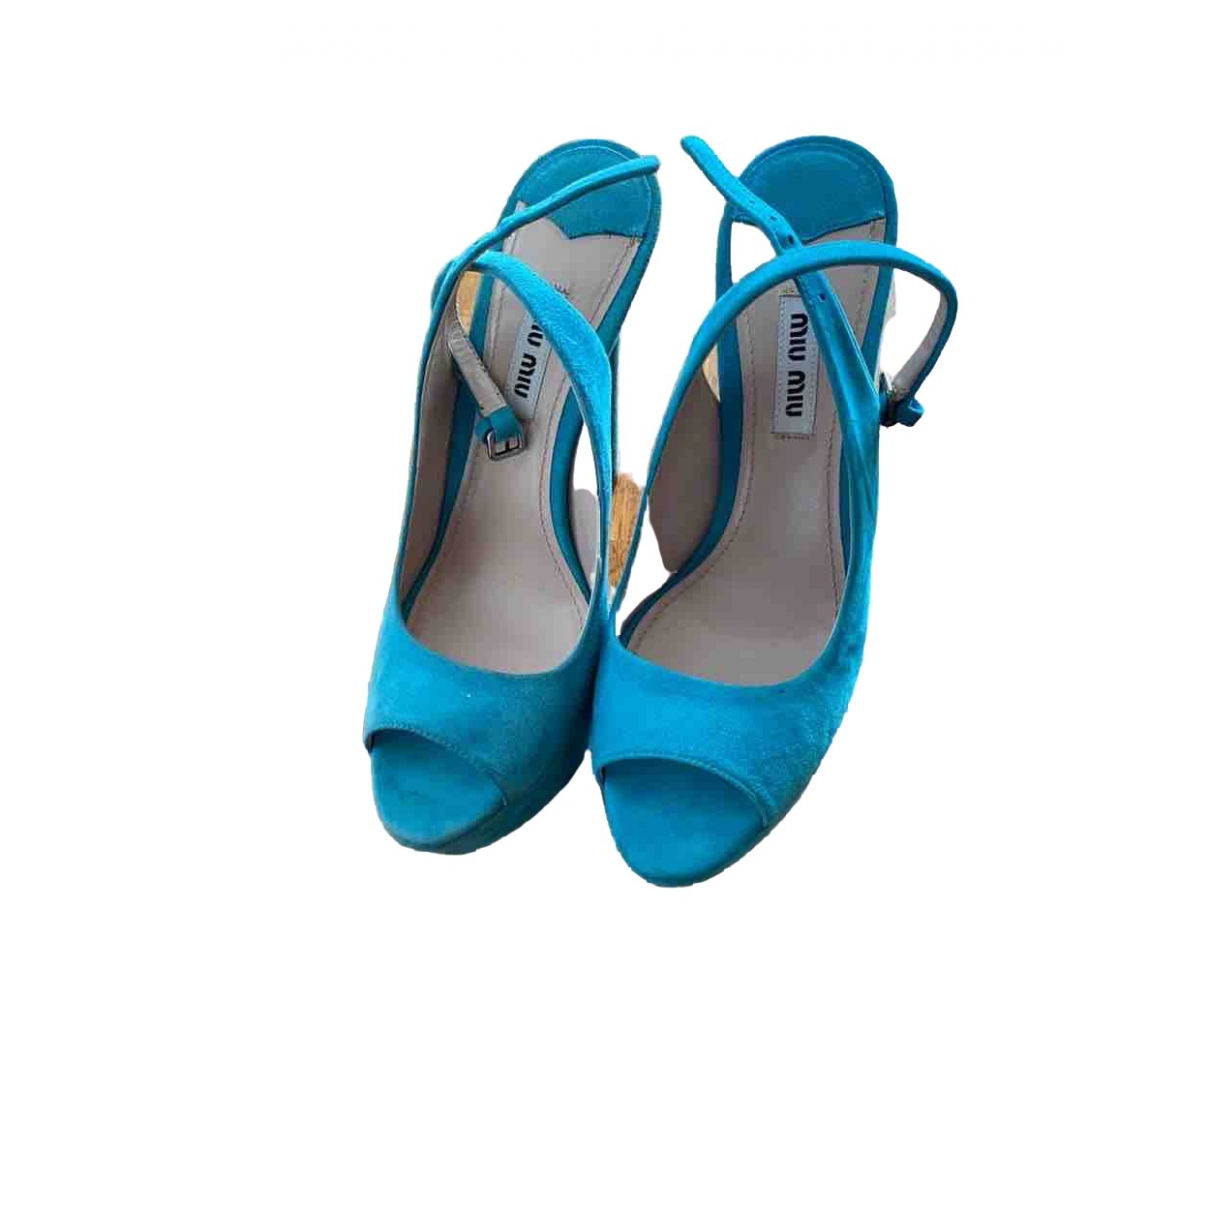 Miu Miu \N Turquoise Suede Sandals for Women 37.5 EU